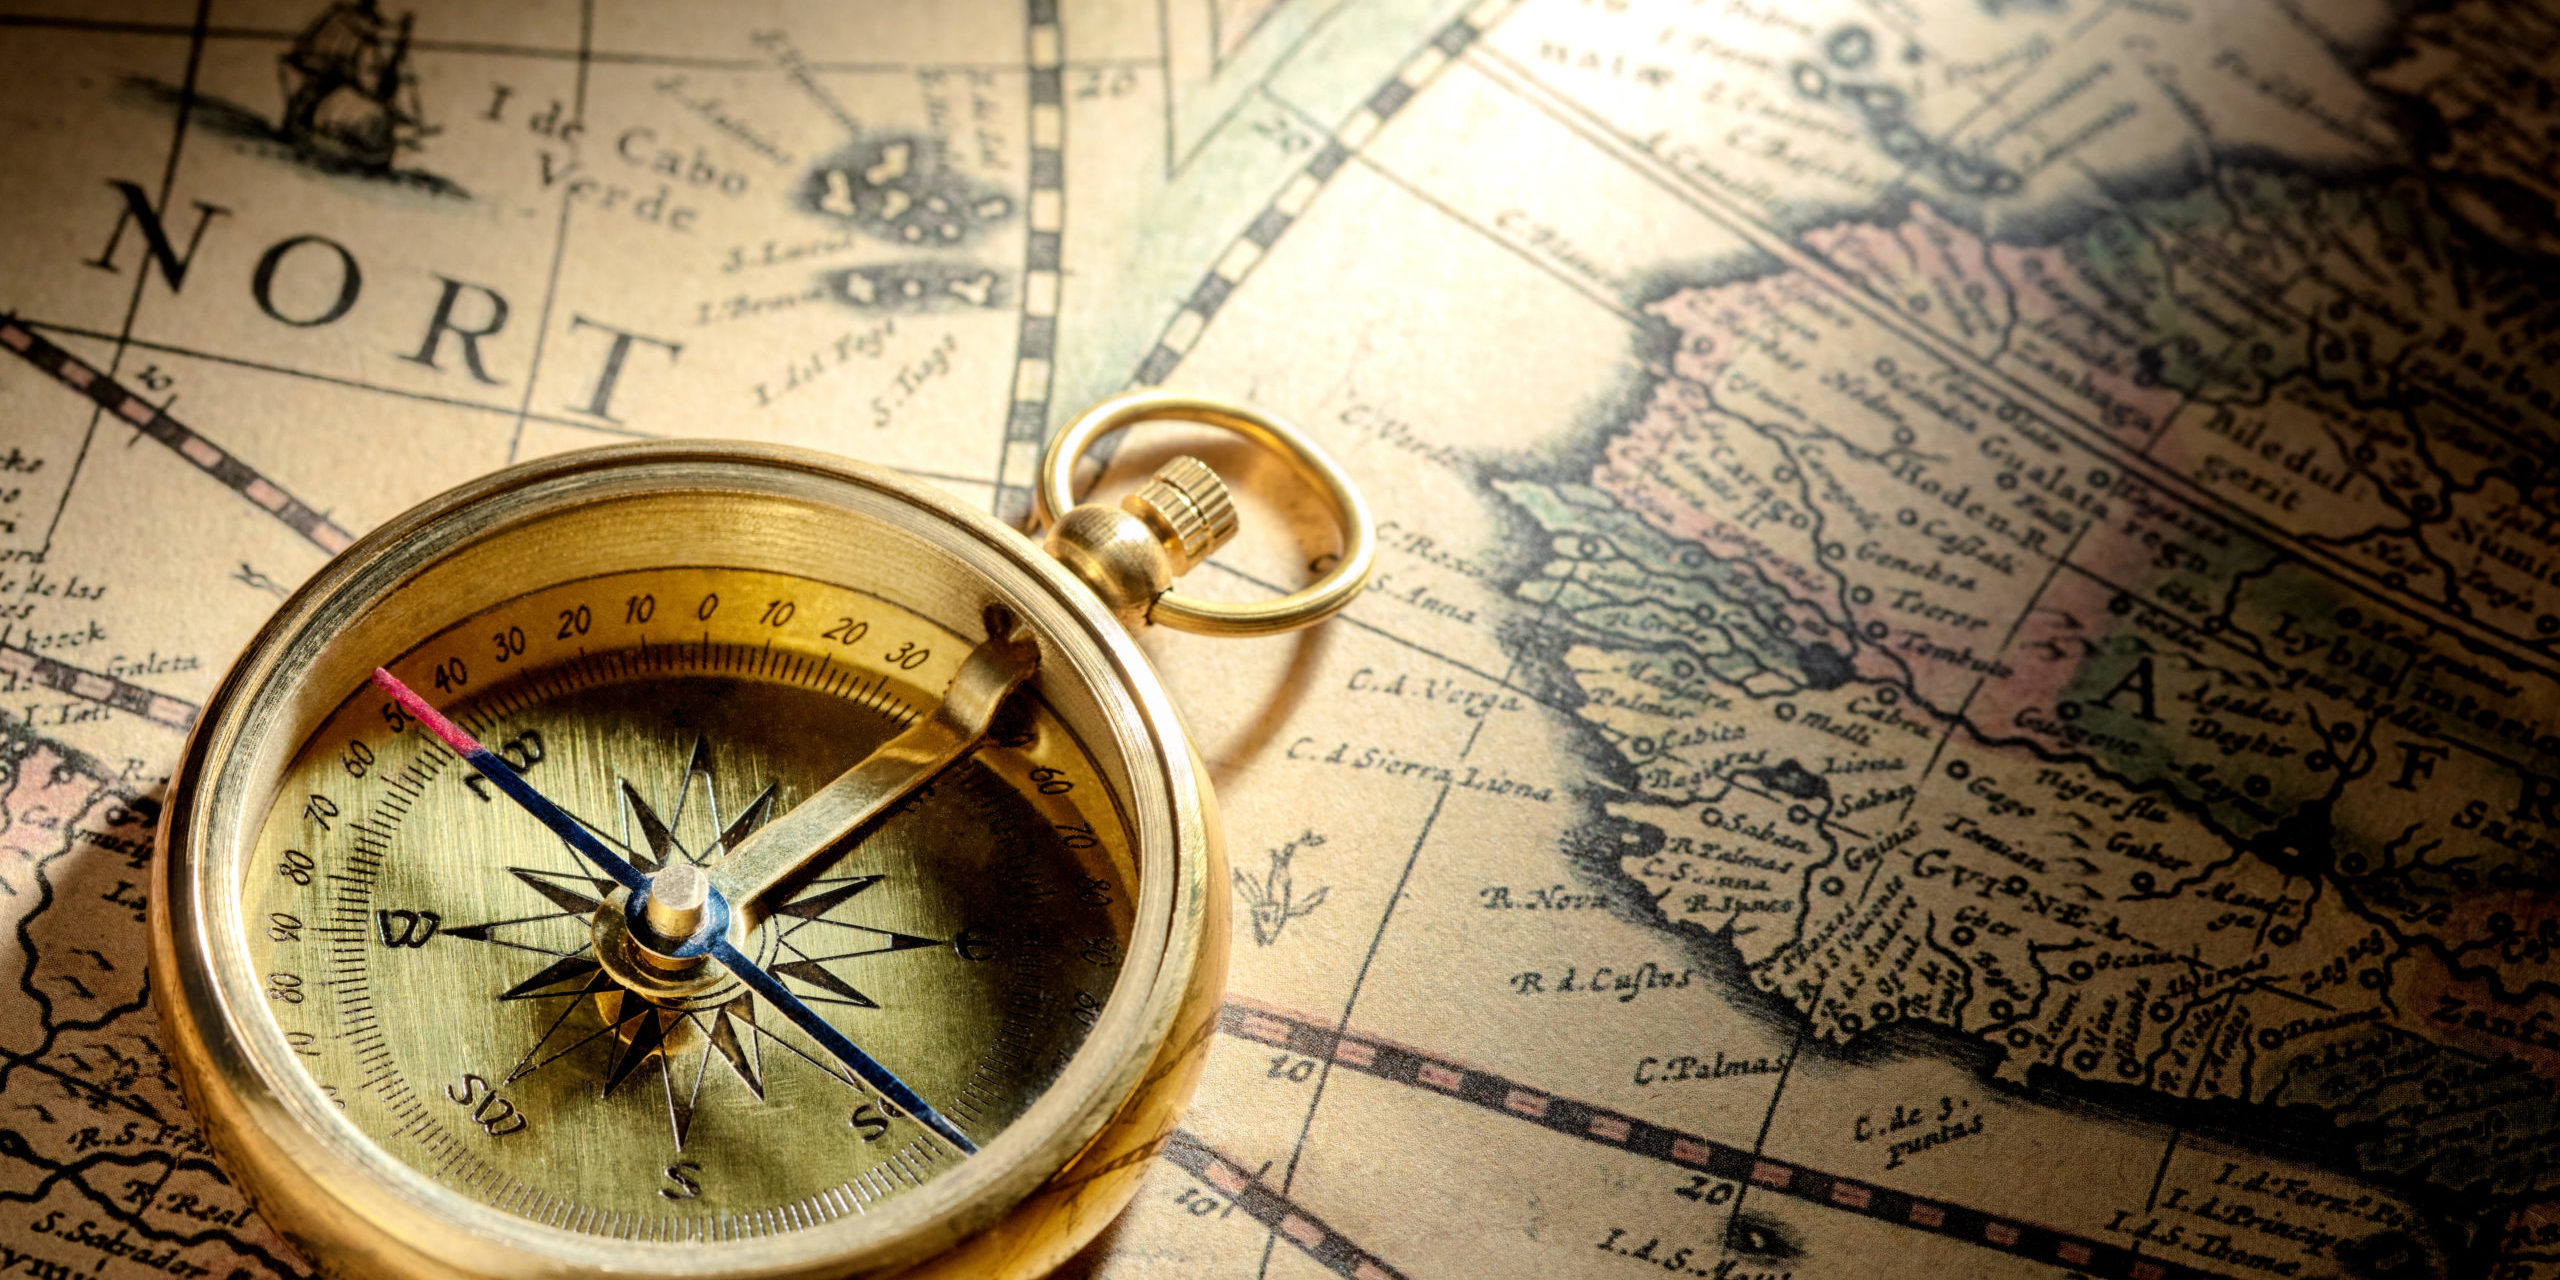 Antique compass on ancient map by H. Hondius dated 1630AD